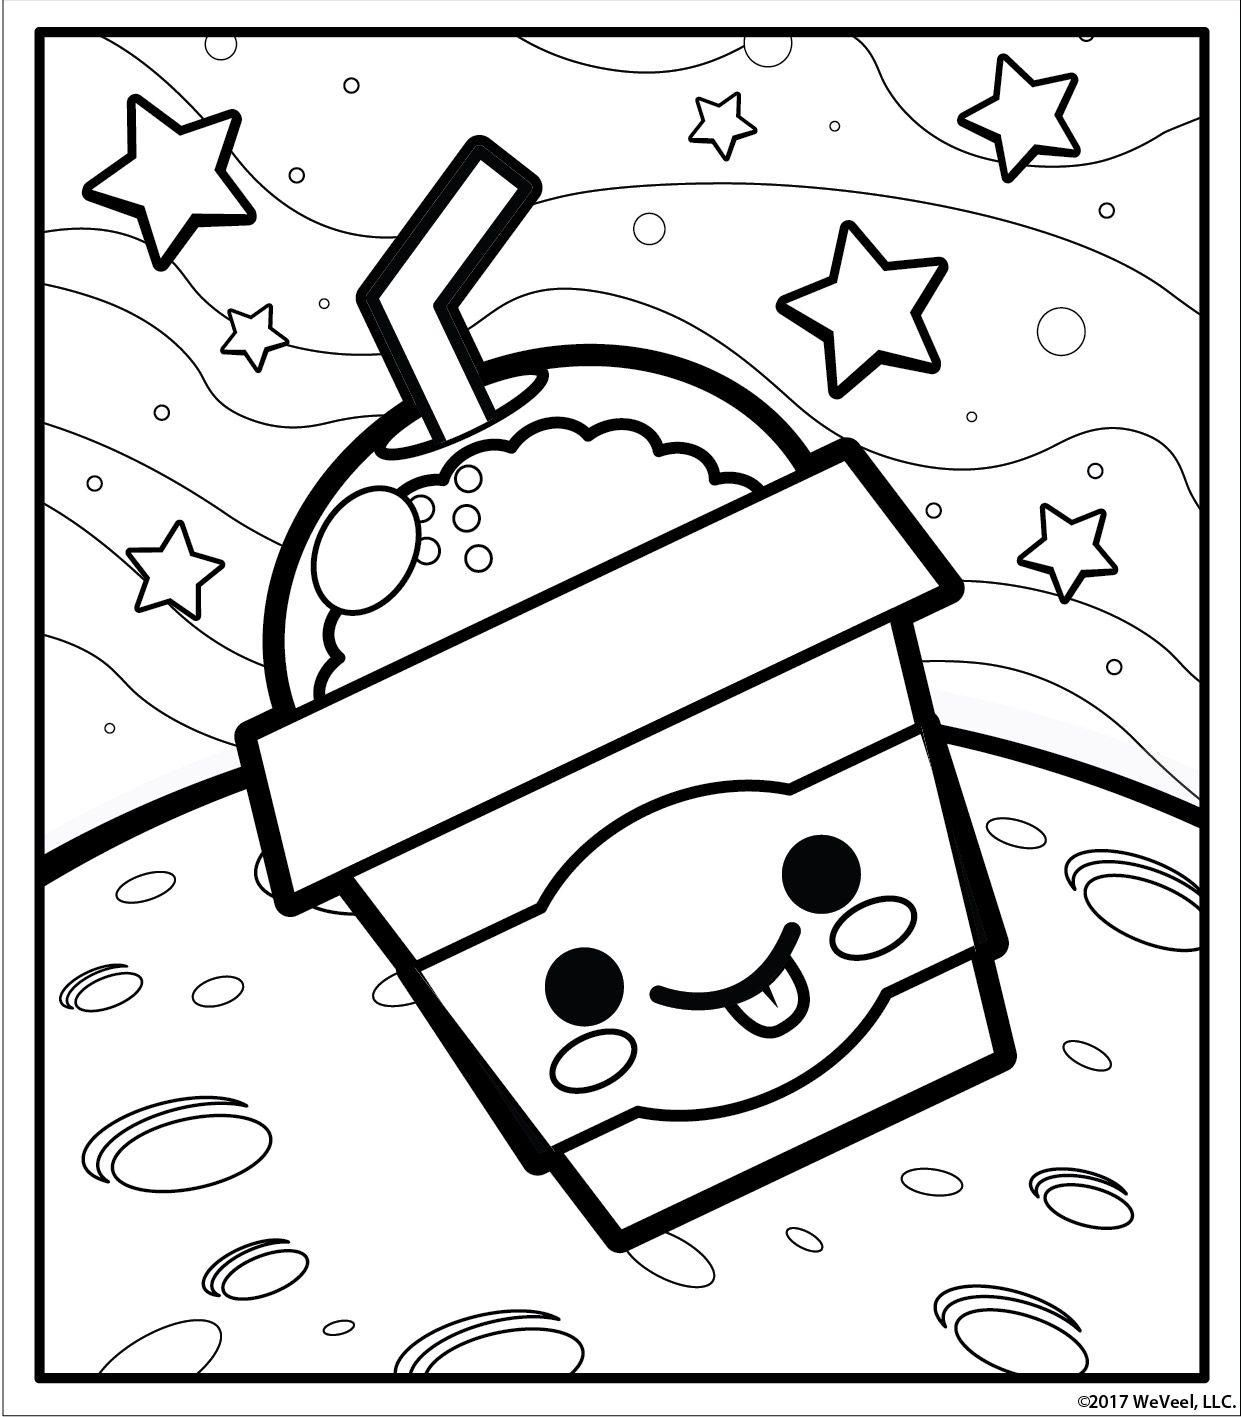 18 Coloring Page Cute Monster Coloring Pages Unicorn Coloring Pages Coloring Pages For Girls